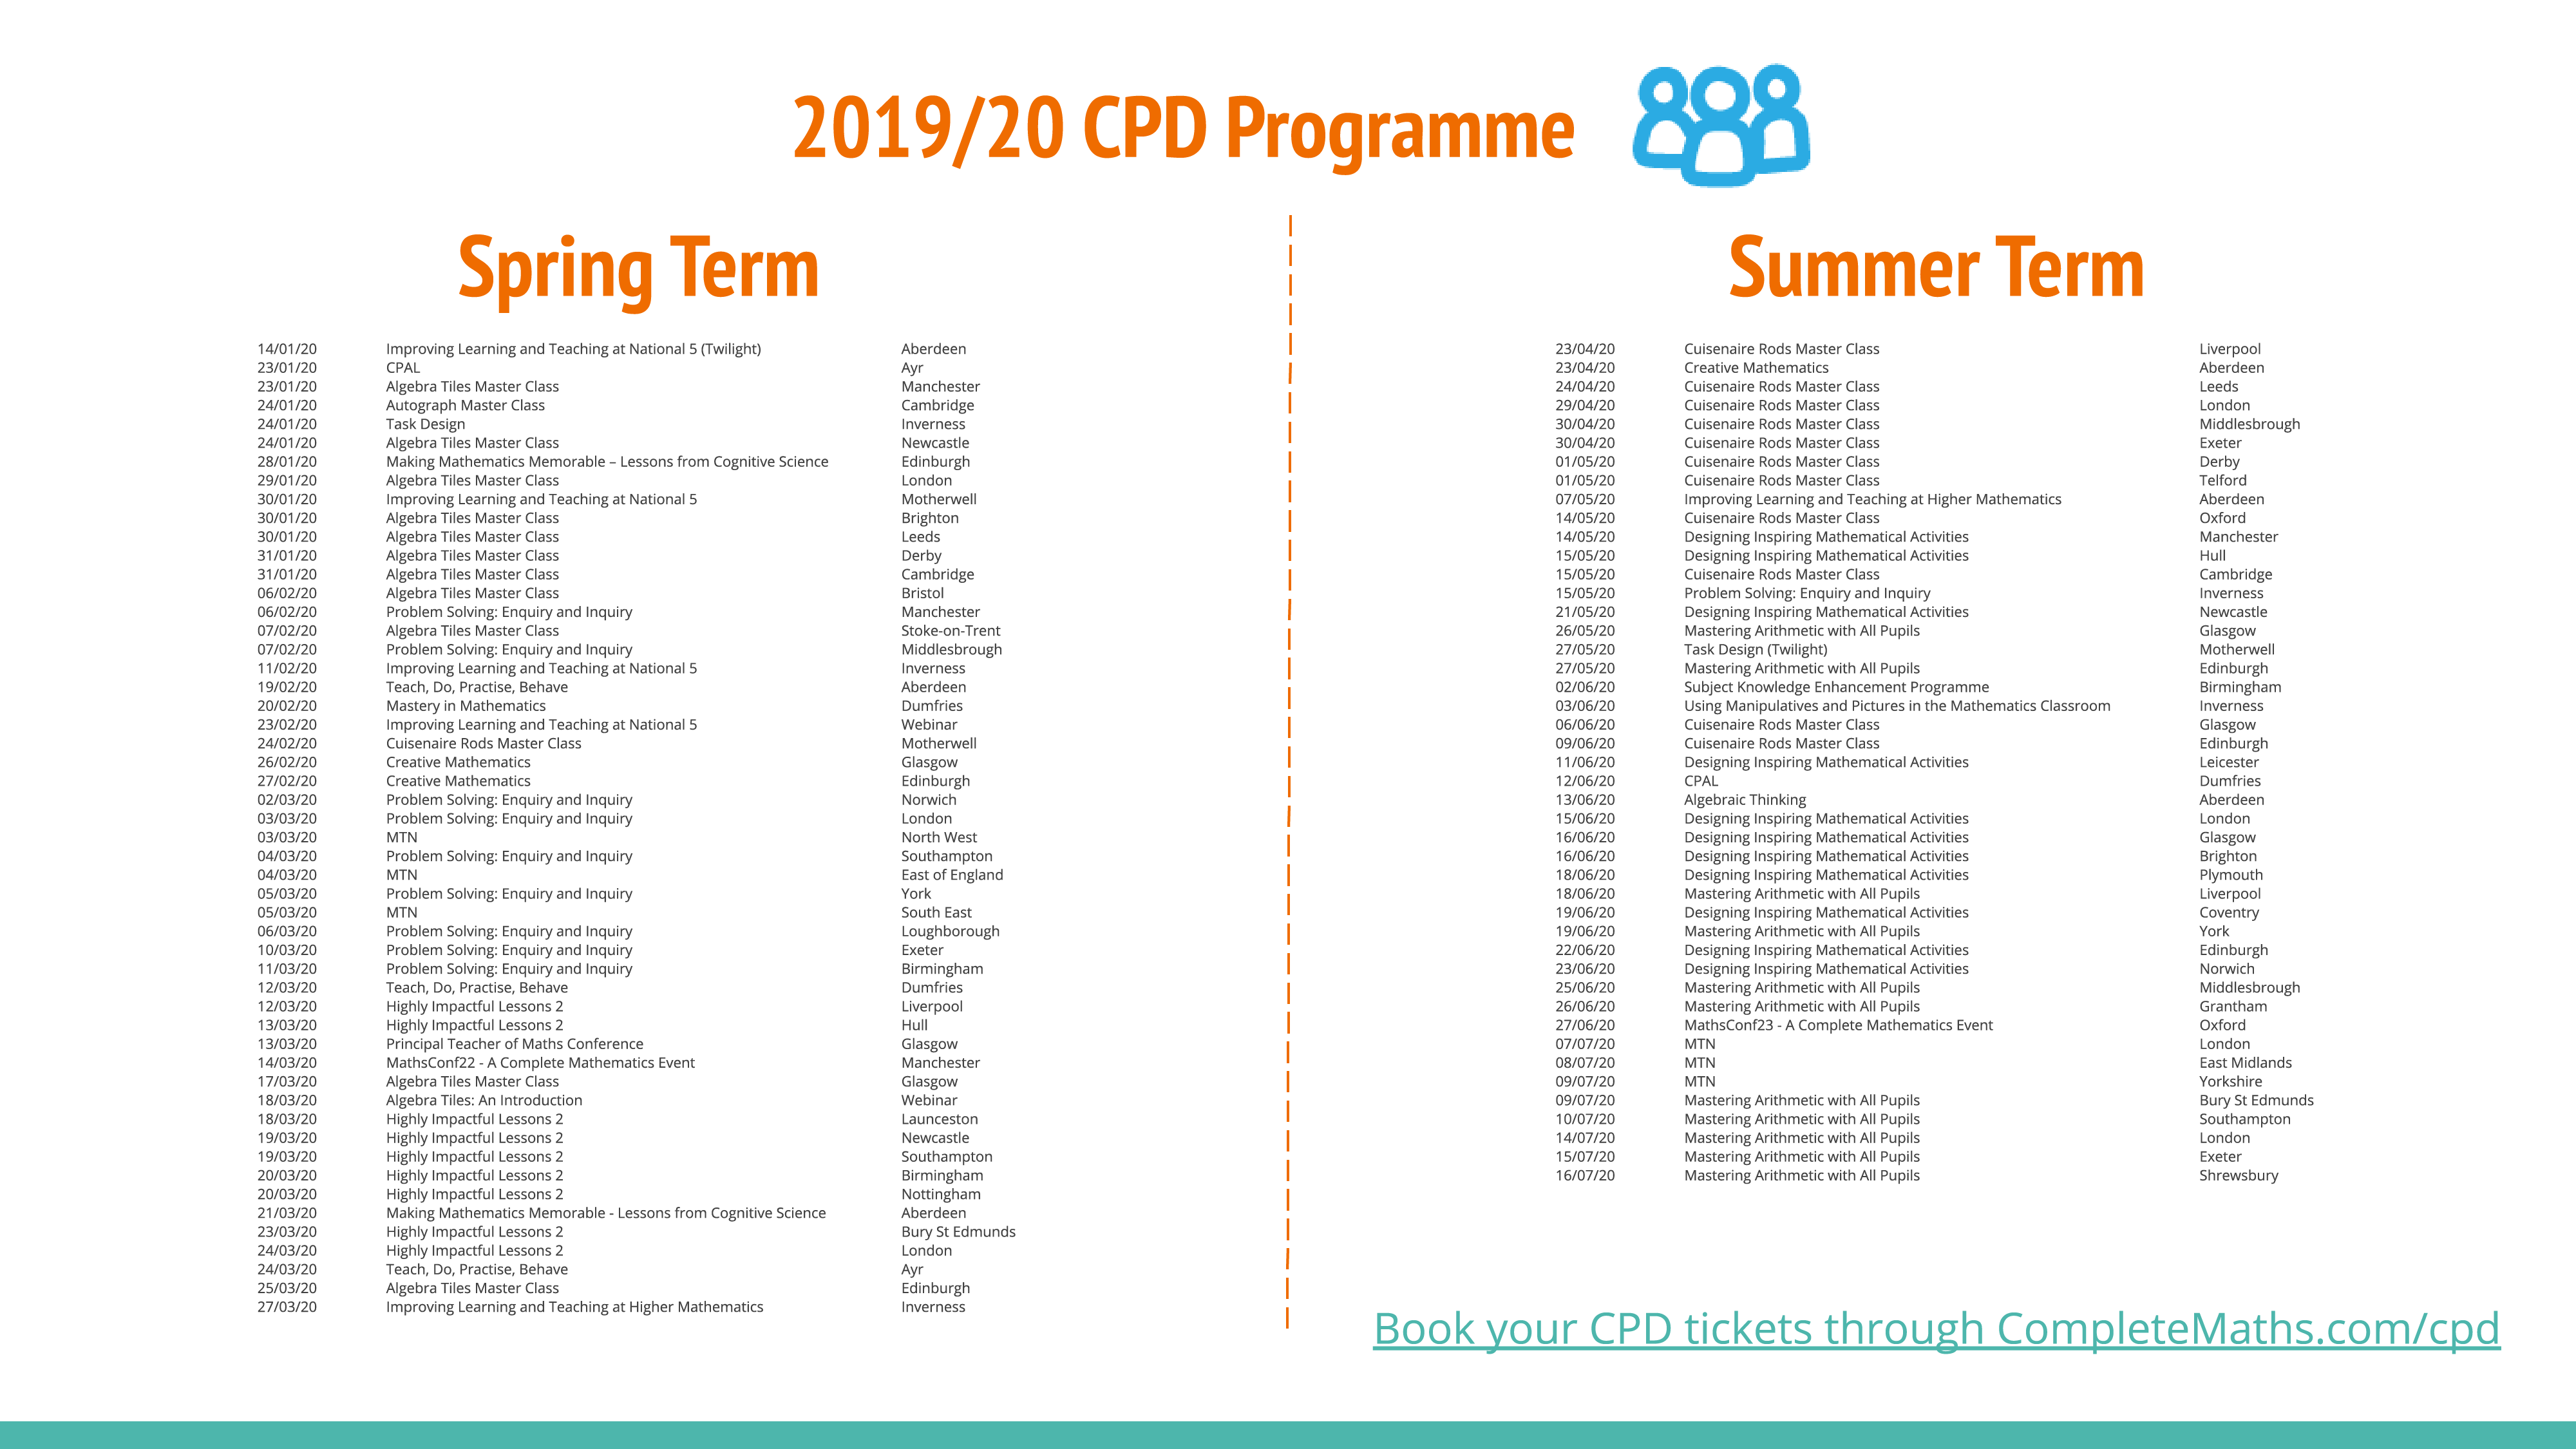 CPD Programme 2019 - 2020